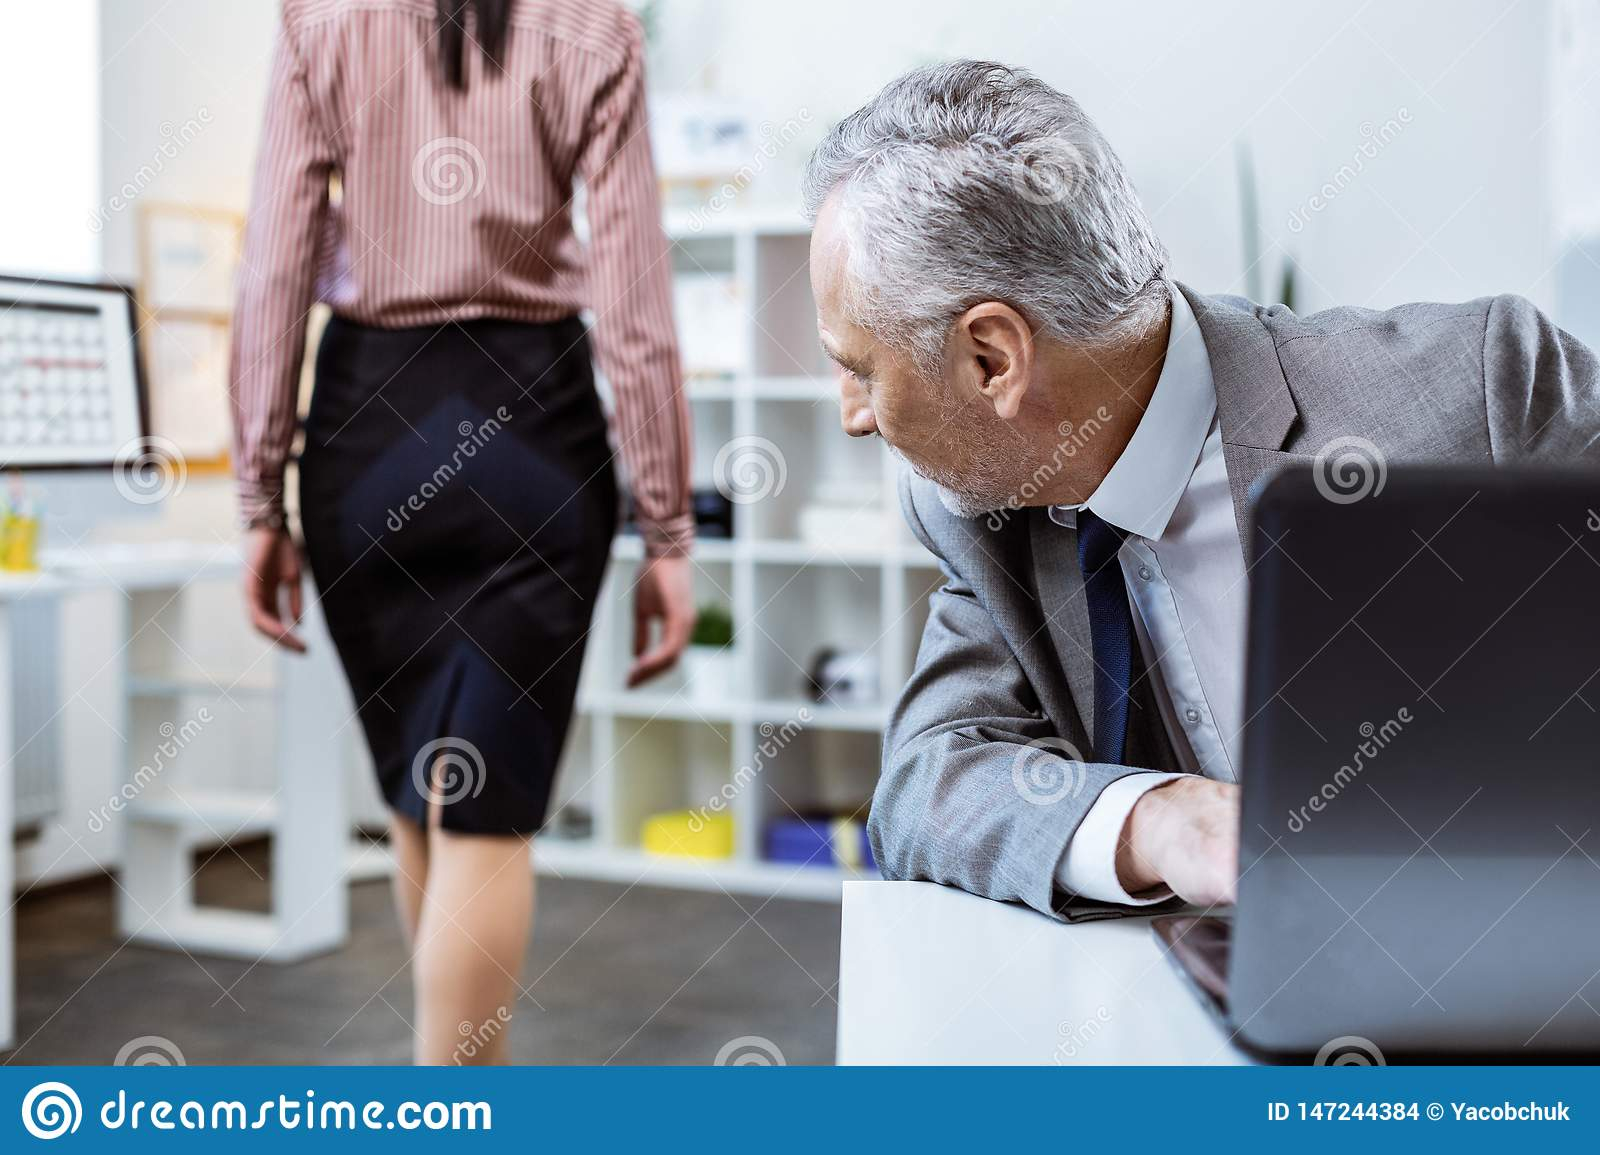 Inappropriate senior worker actively turning around while female colleague